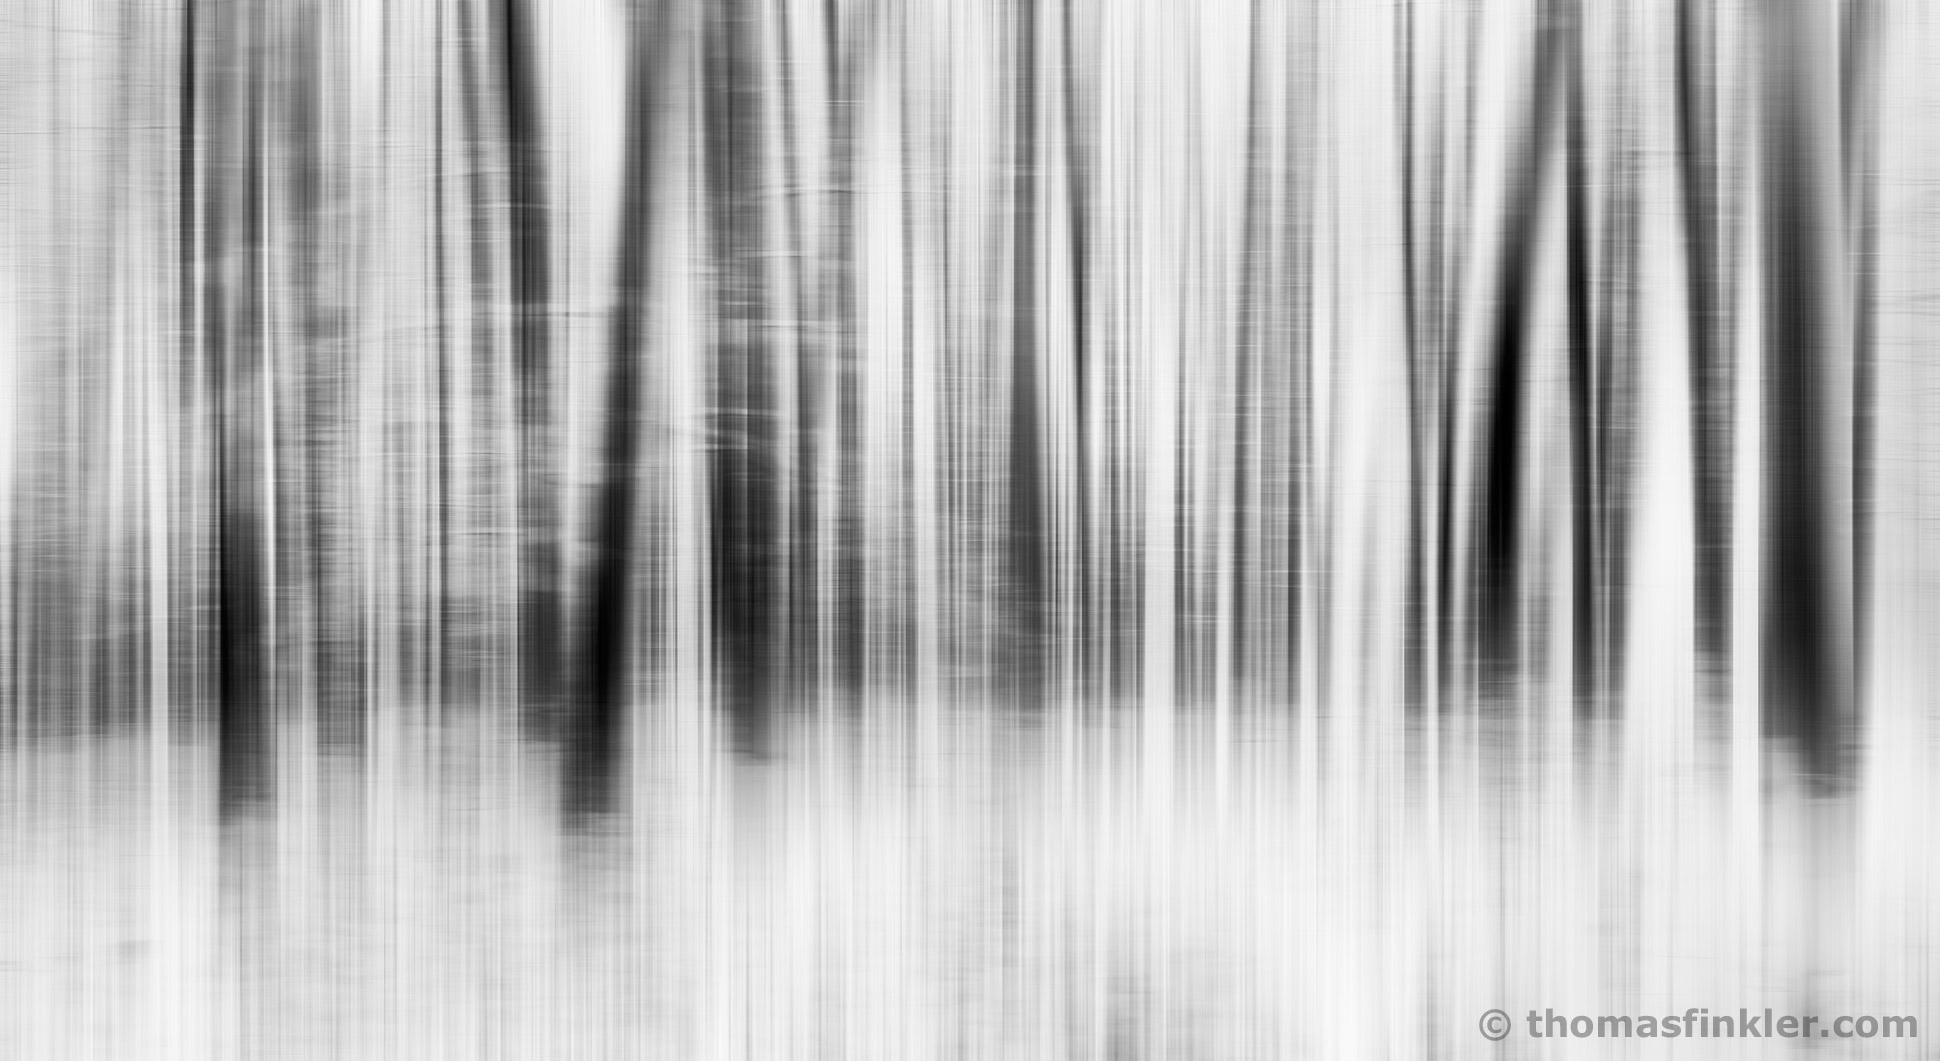 Fine art photography, abstract nature, abstract forest, blurry trees, wall art, colorful, beautiful, poetic, 4 seasons, prints, for sale